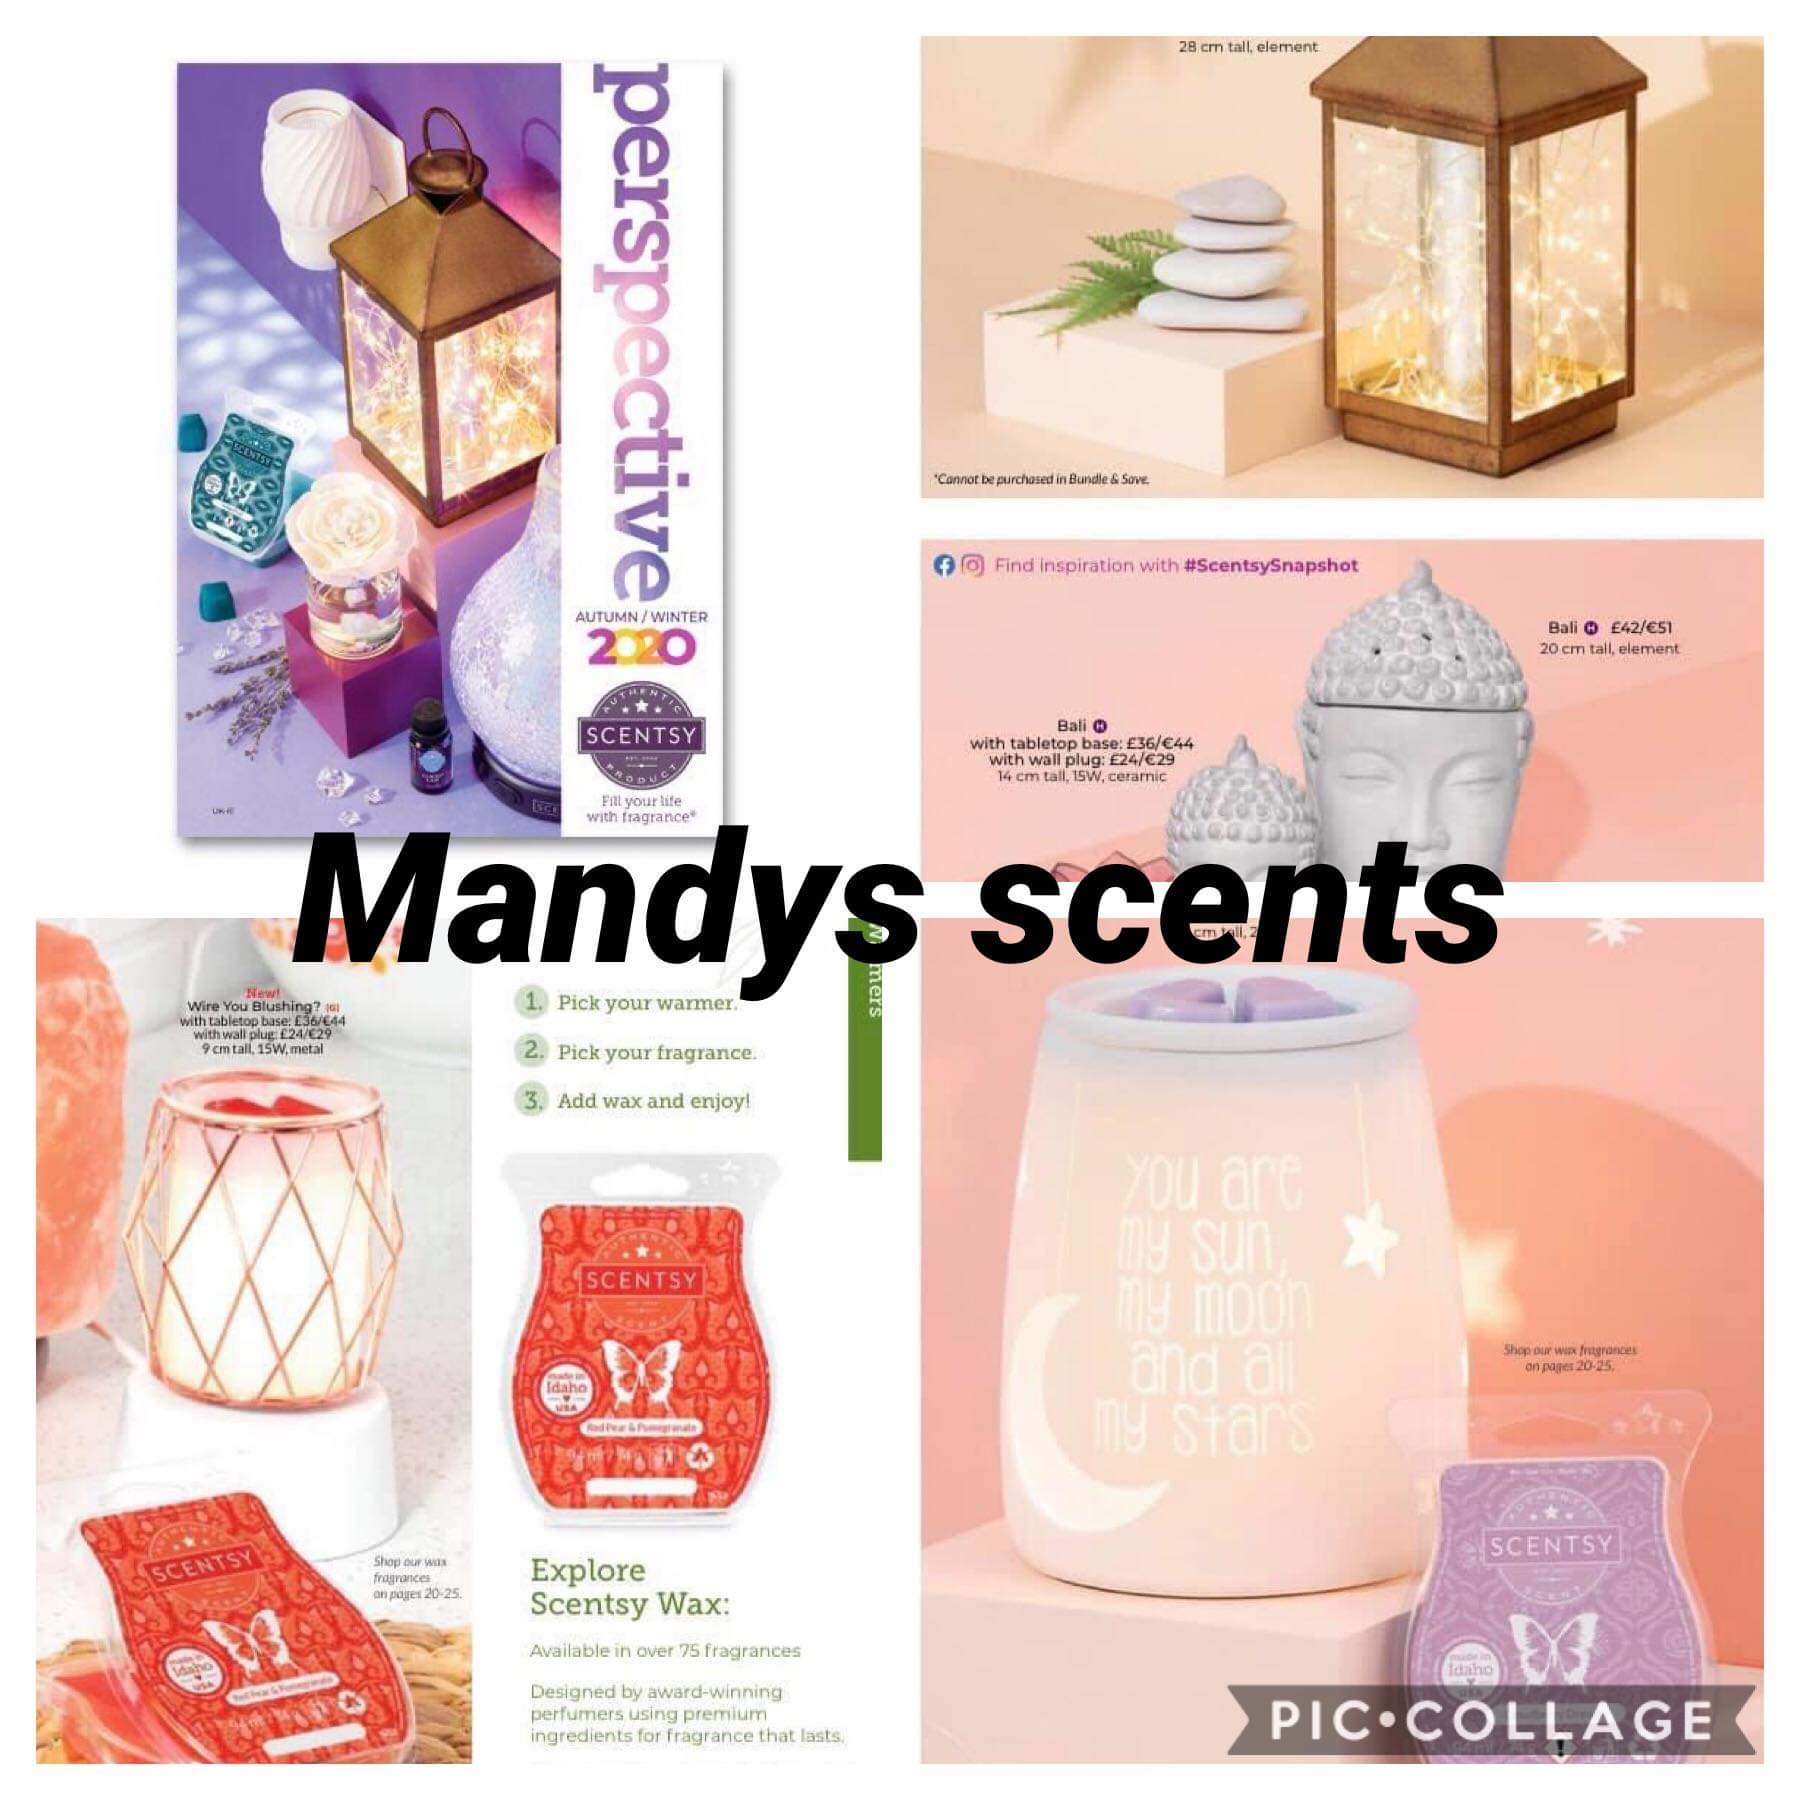 Mandy's Scents